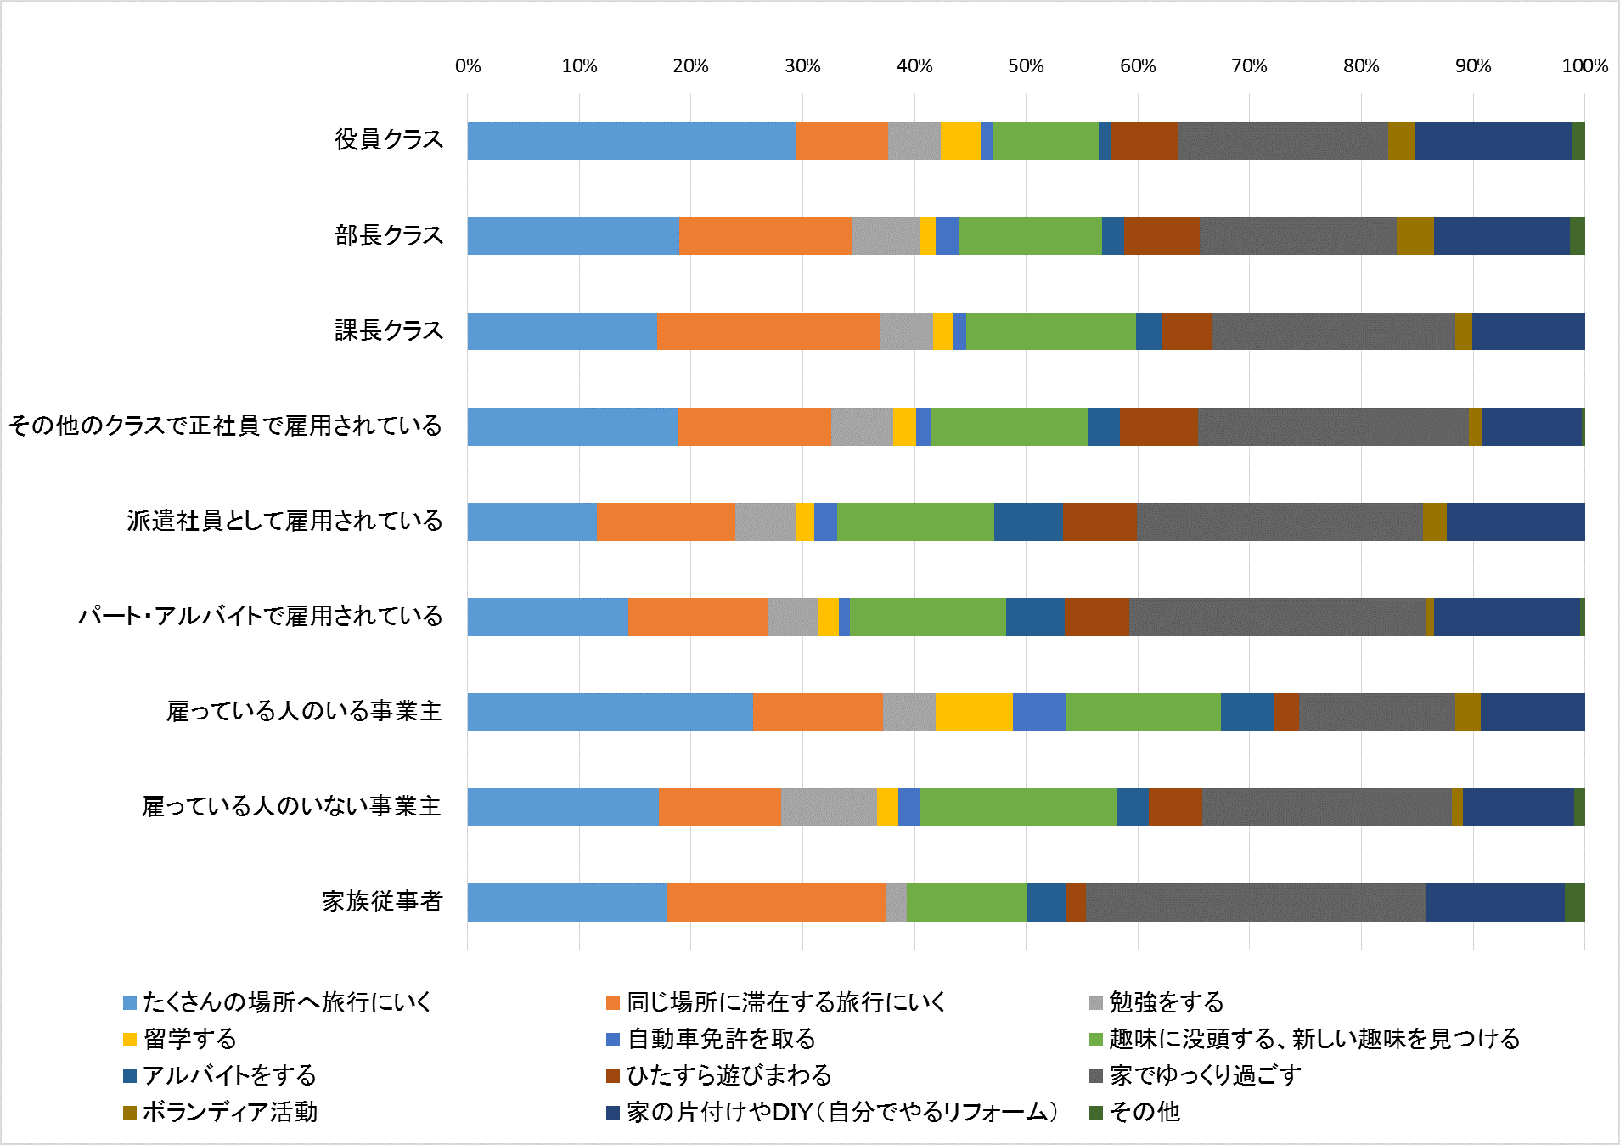 201808-15-fig-04.png